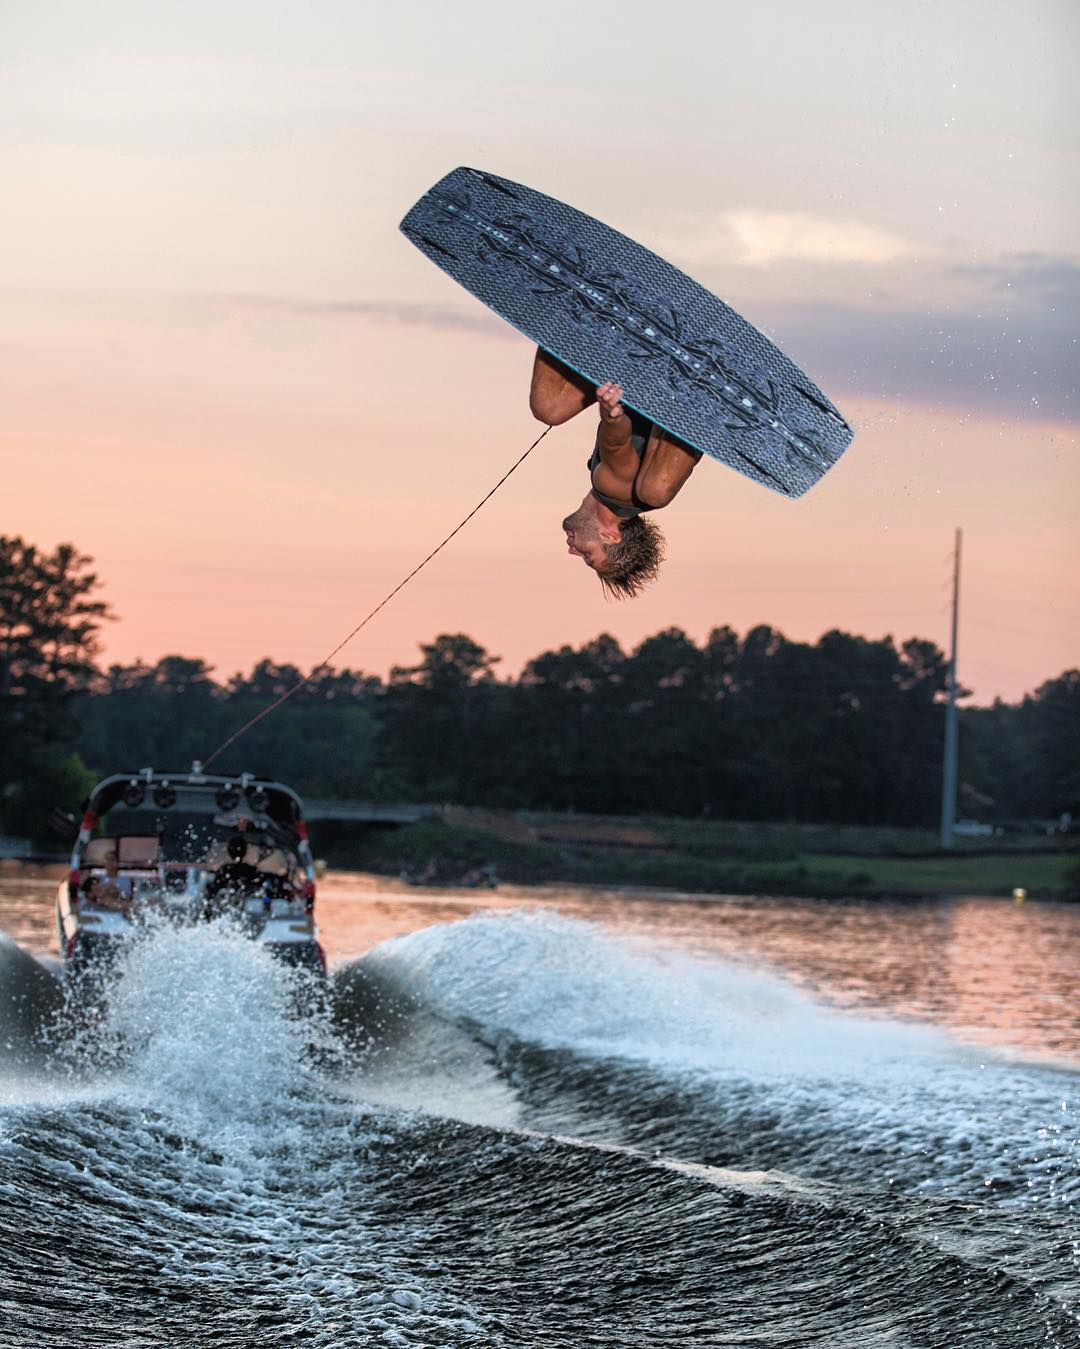 @jleeboi getting inverted on the O'Shea Pro 139. Check it out at Humanoidwake.com